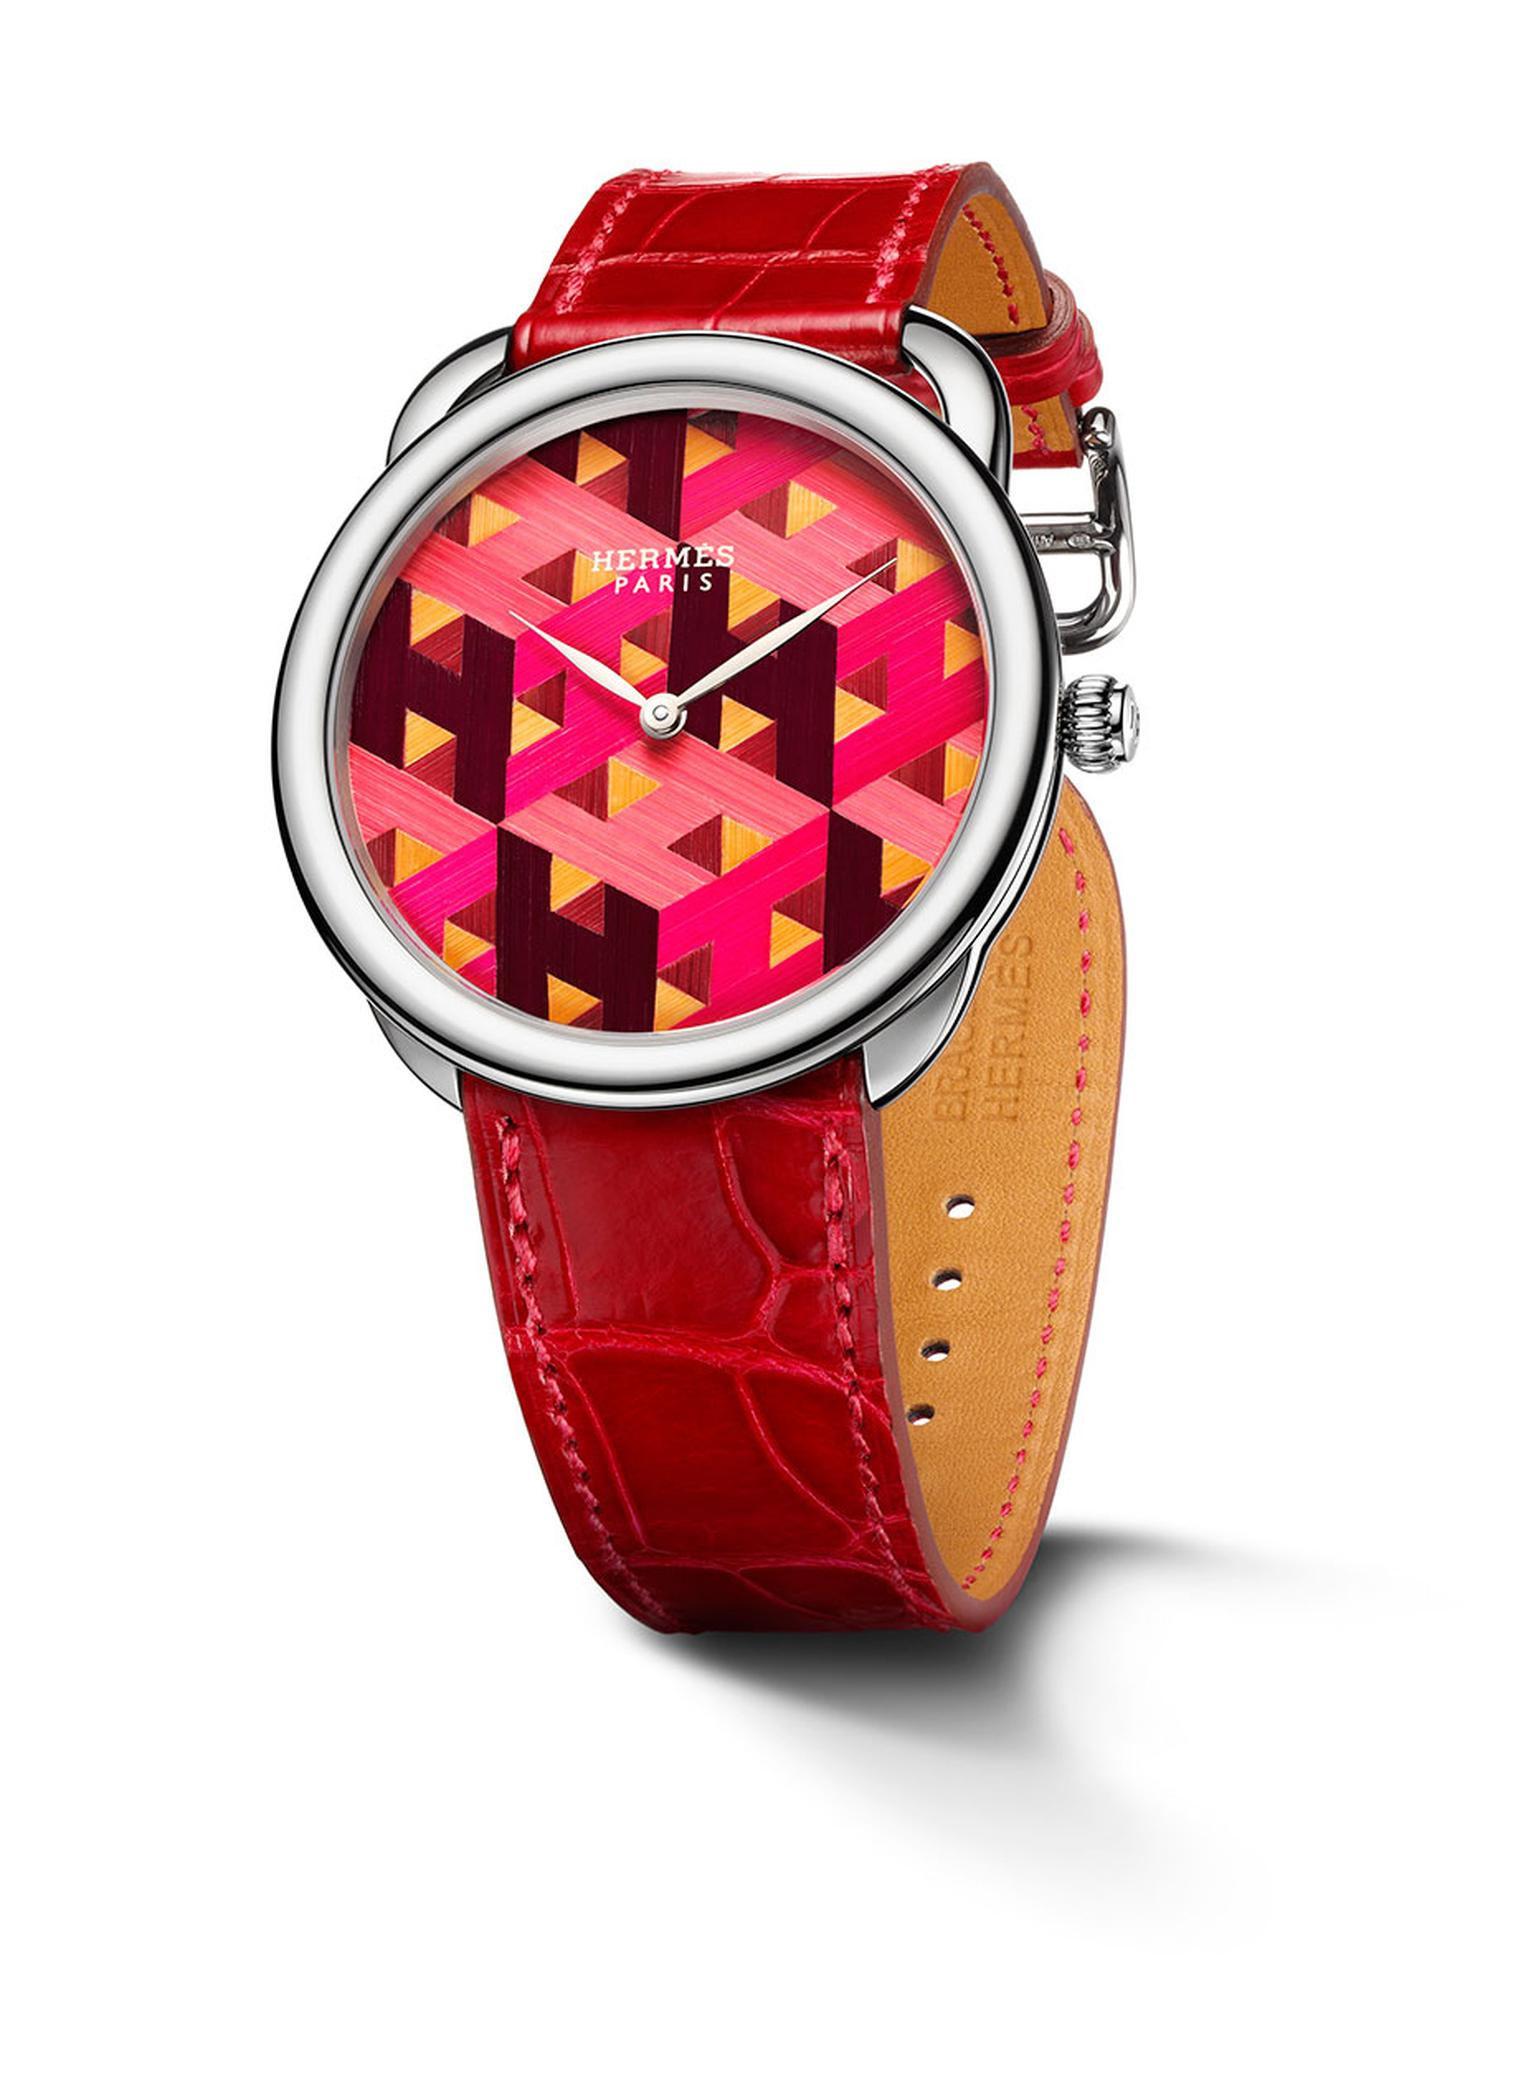 The Hermès Arceau H Cube is a limited edition of 10 and features a dial made entirely of straw marquetry